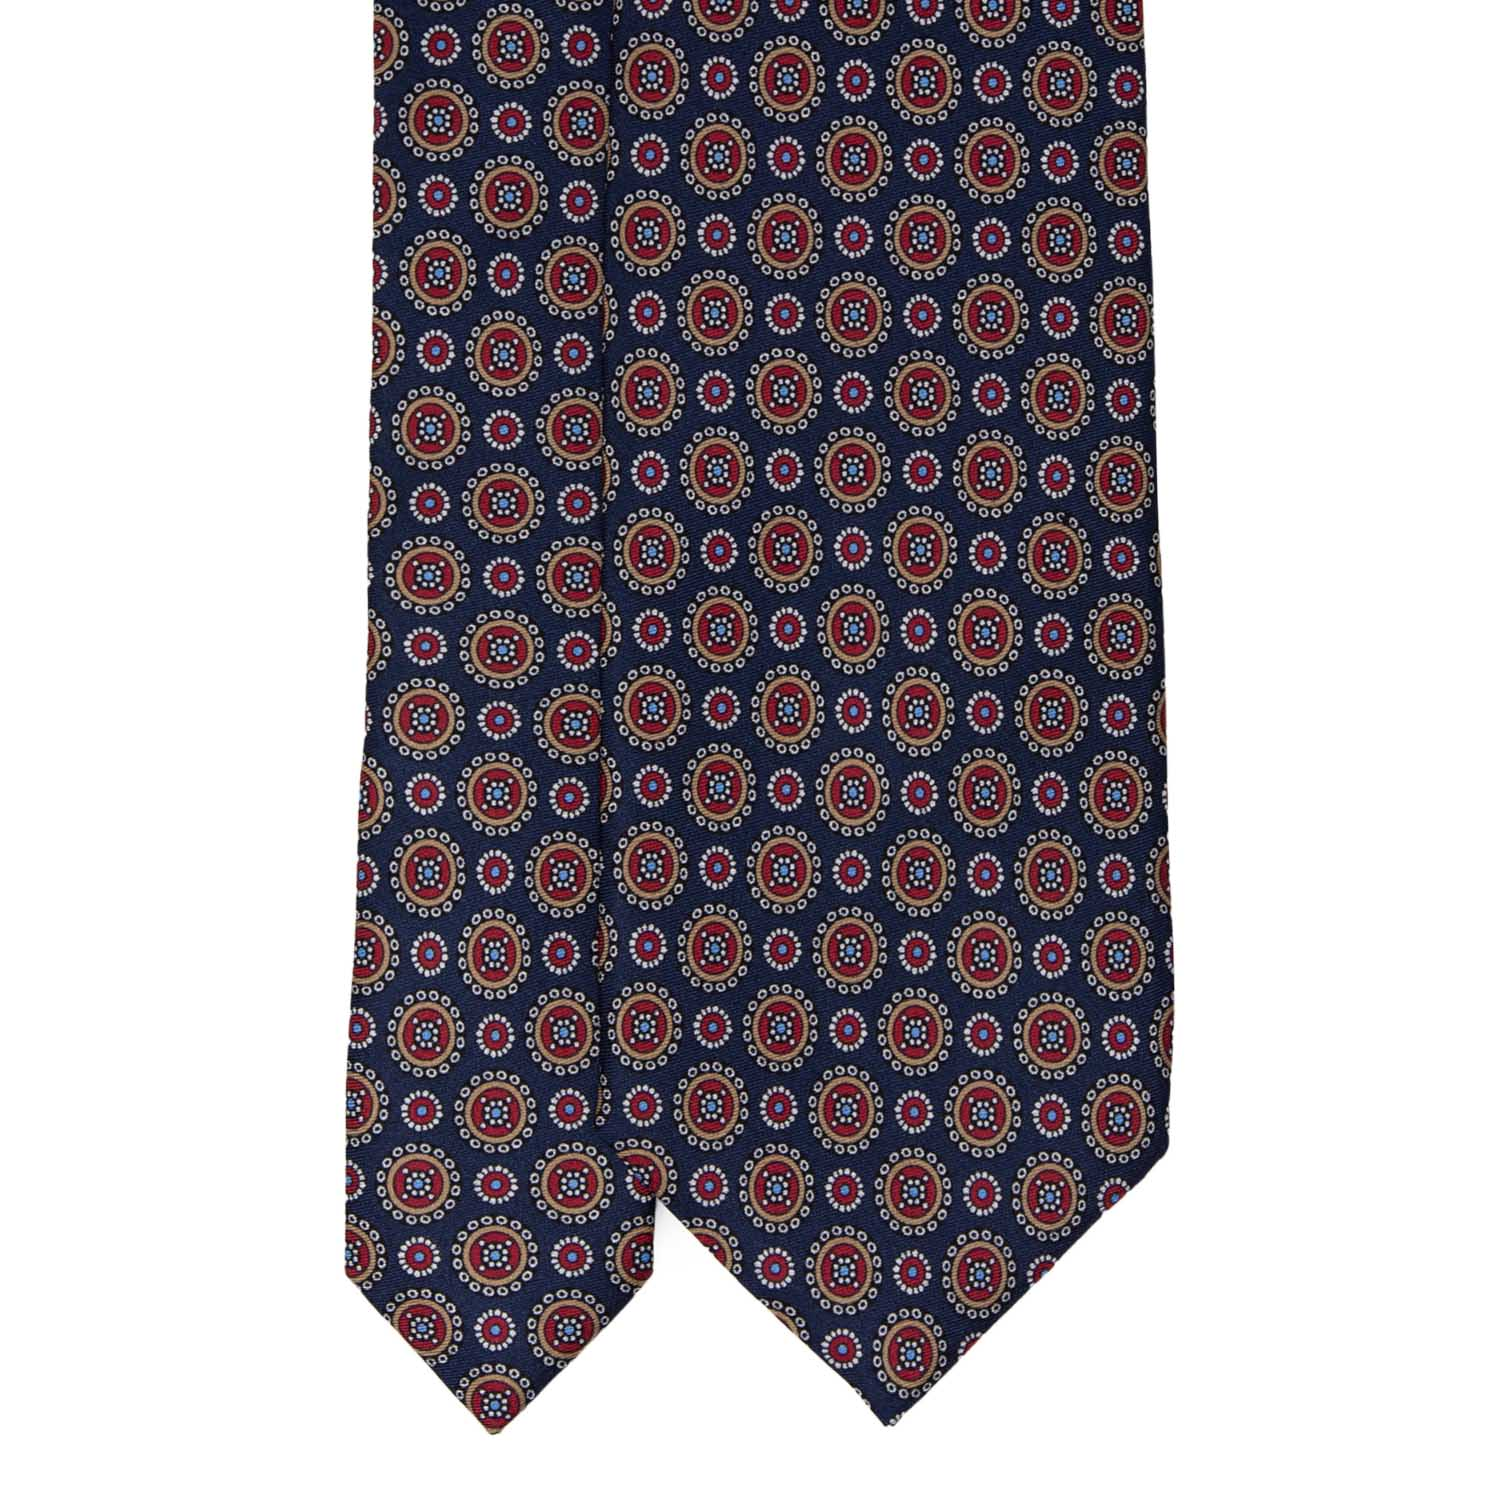 Navy Blue with Round Pattern Silk Tie - serafinesilk